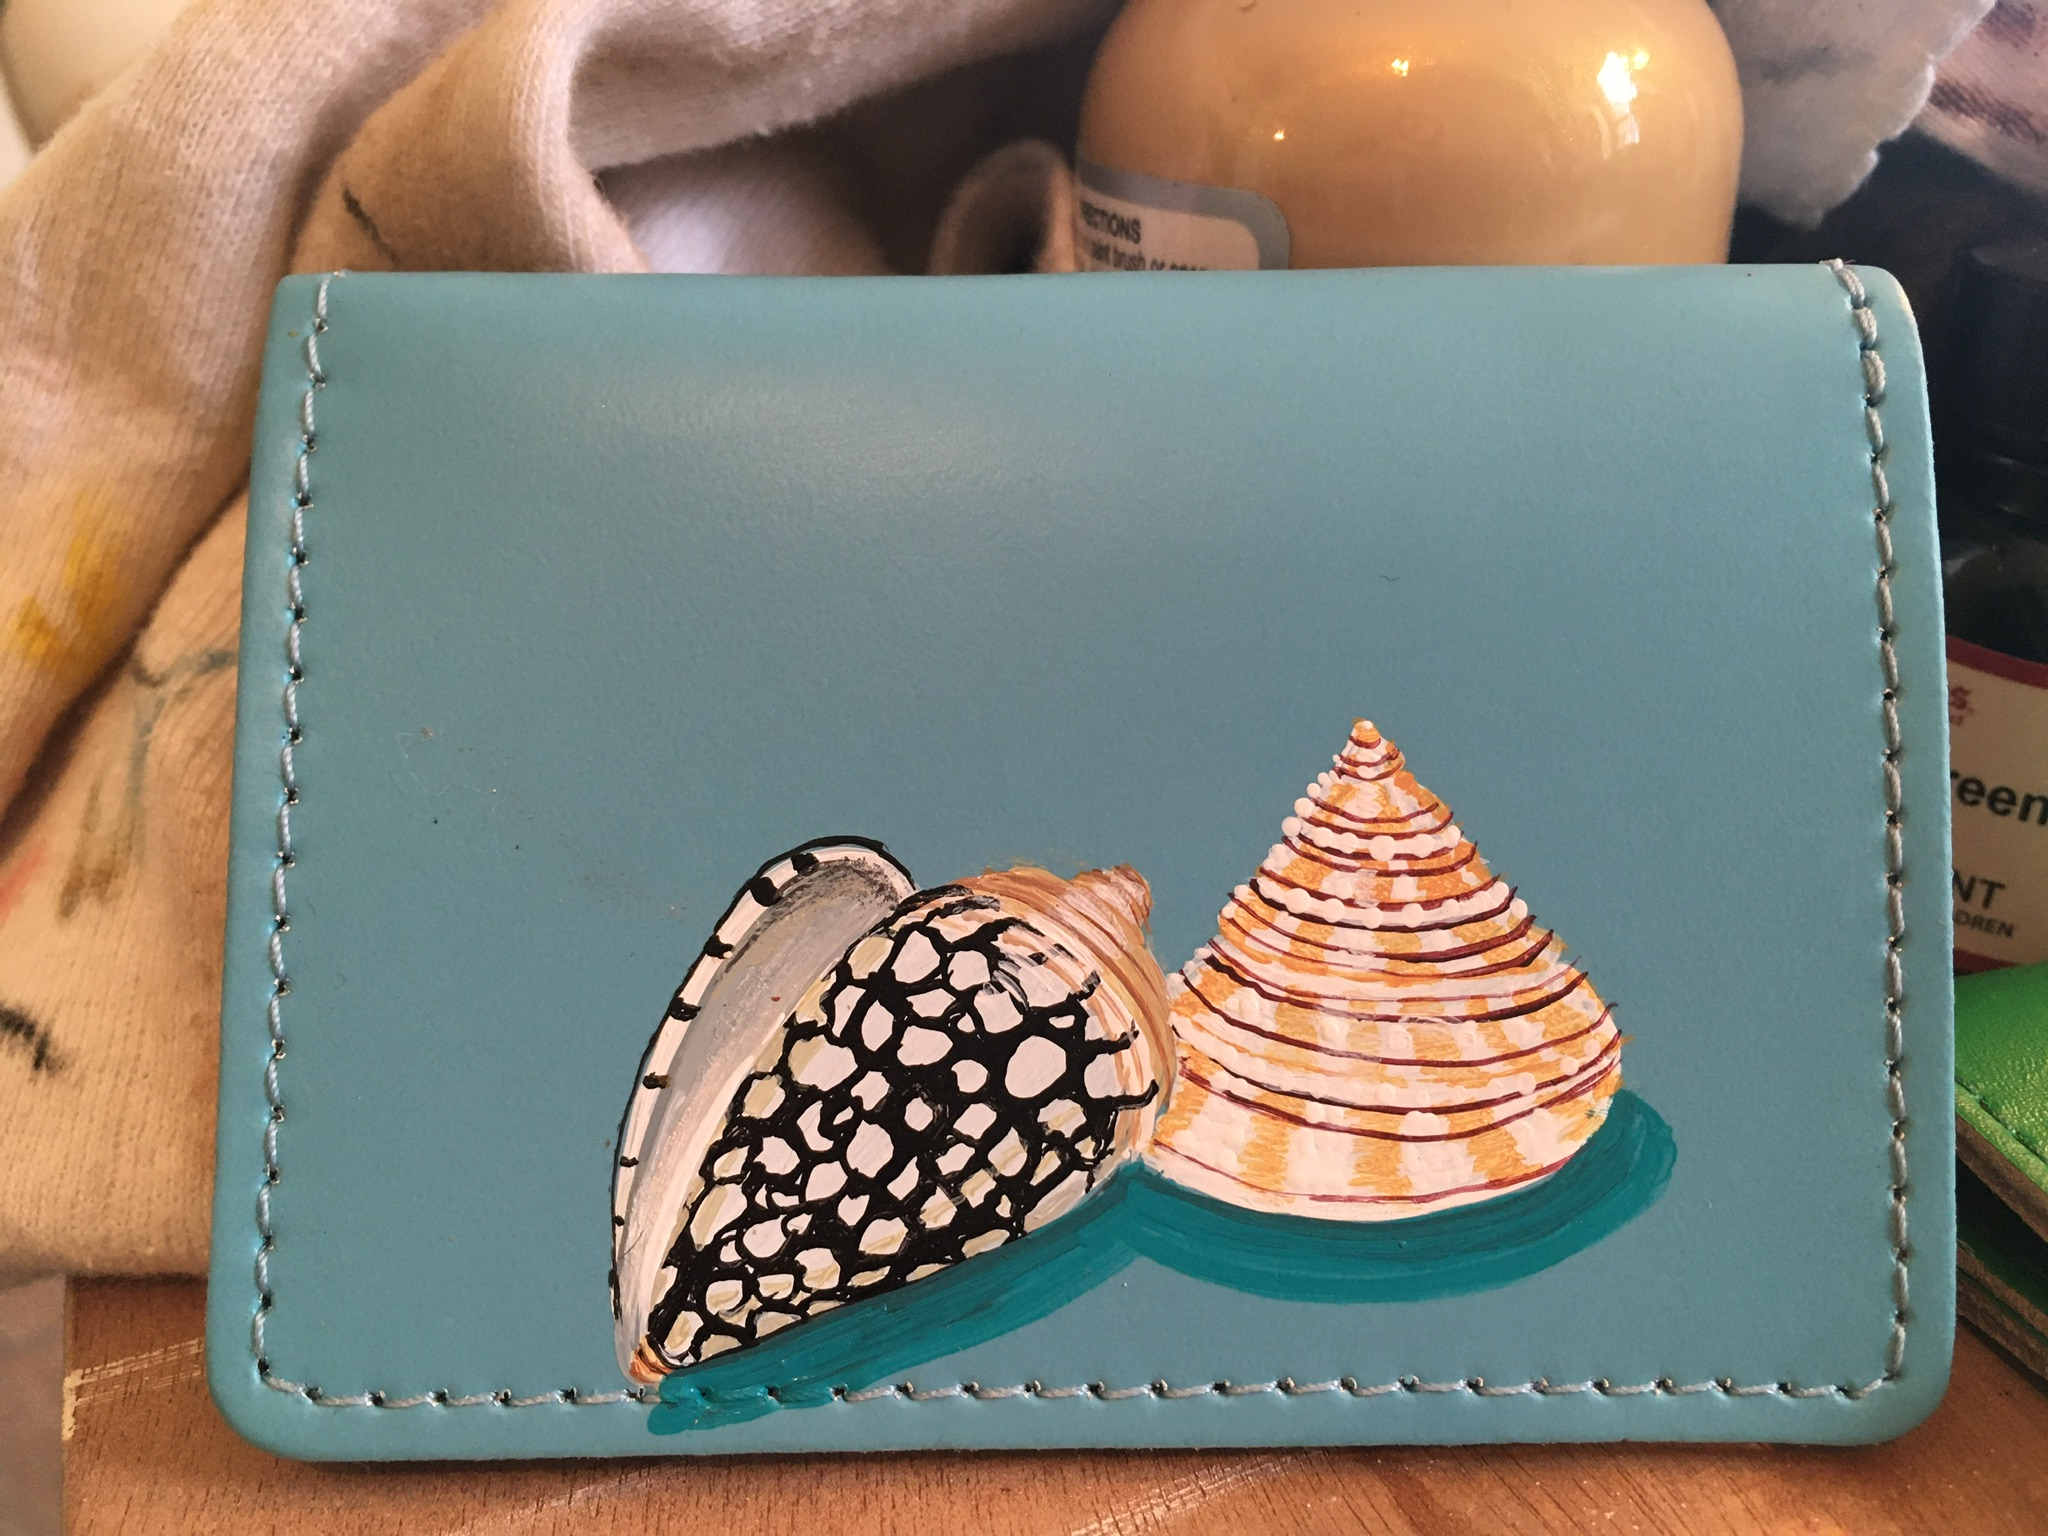 leather card case painted with shells